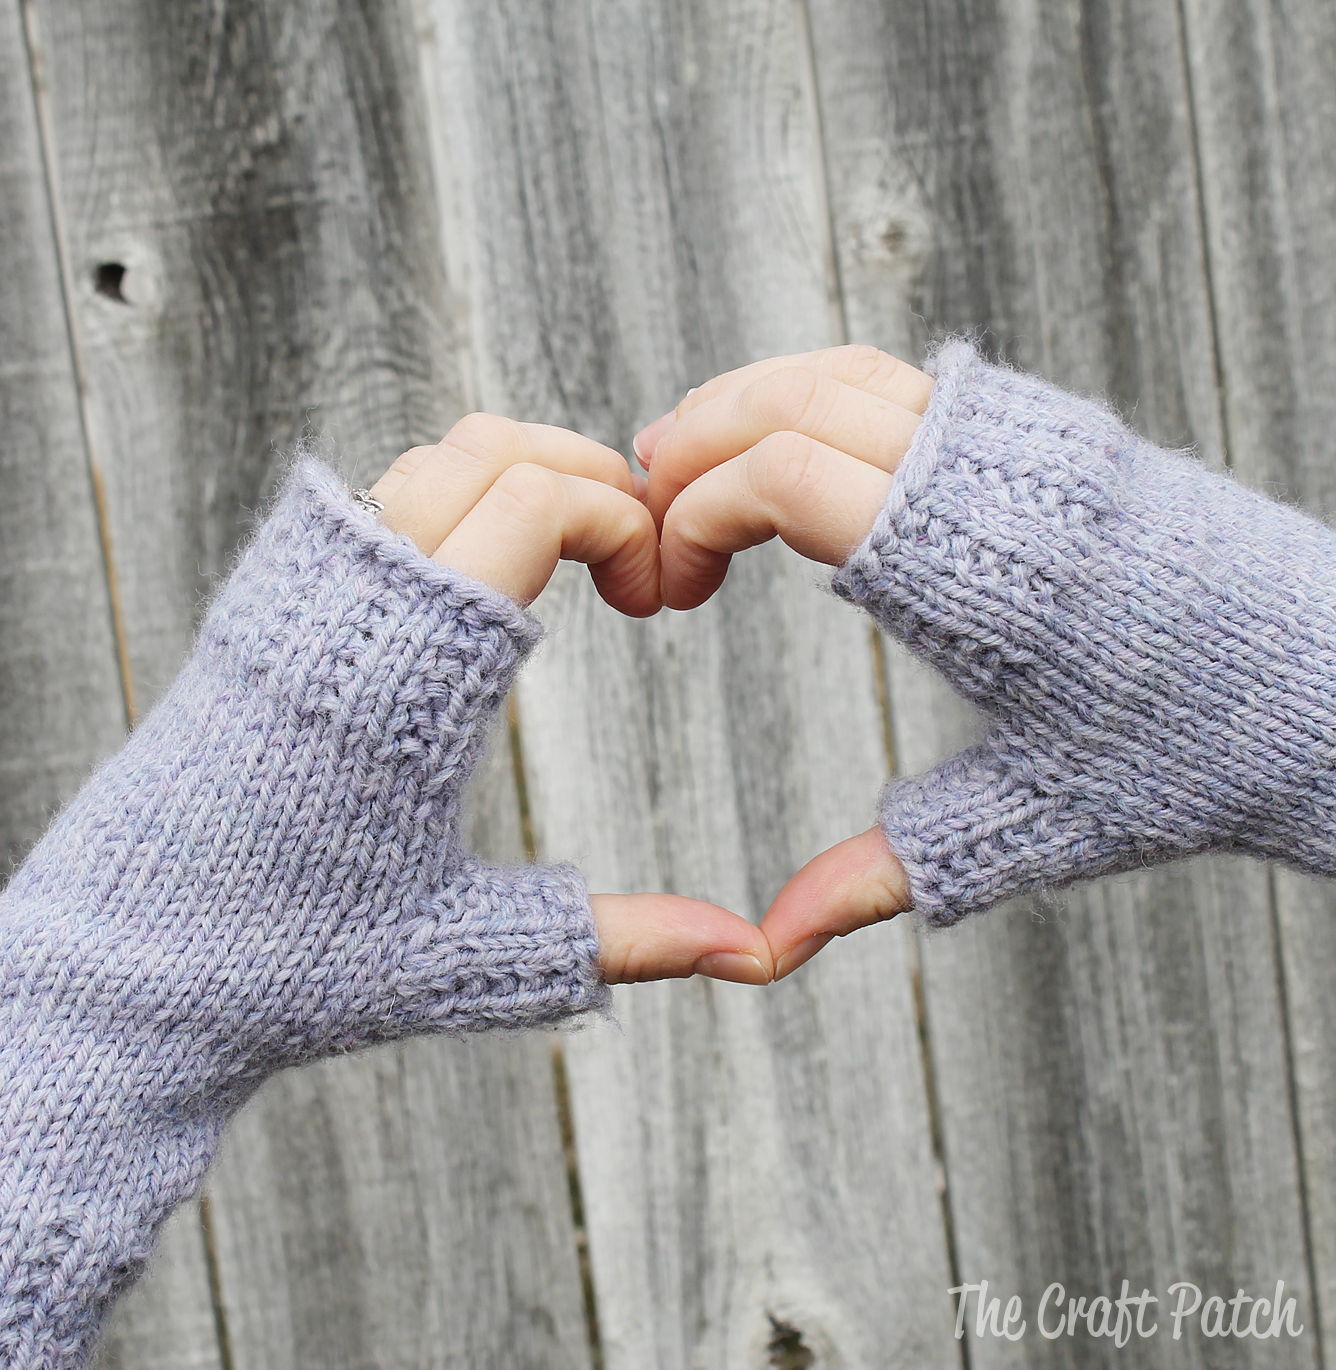 Knit Fingerless Gloves Pattern Free : The Craft Patch: Learn To Knit: Happy Hands Fingerless Mitts Free Pattern